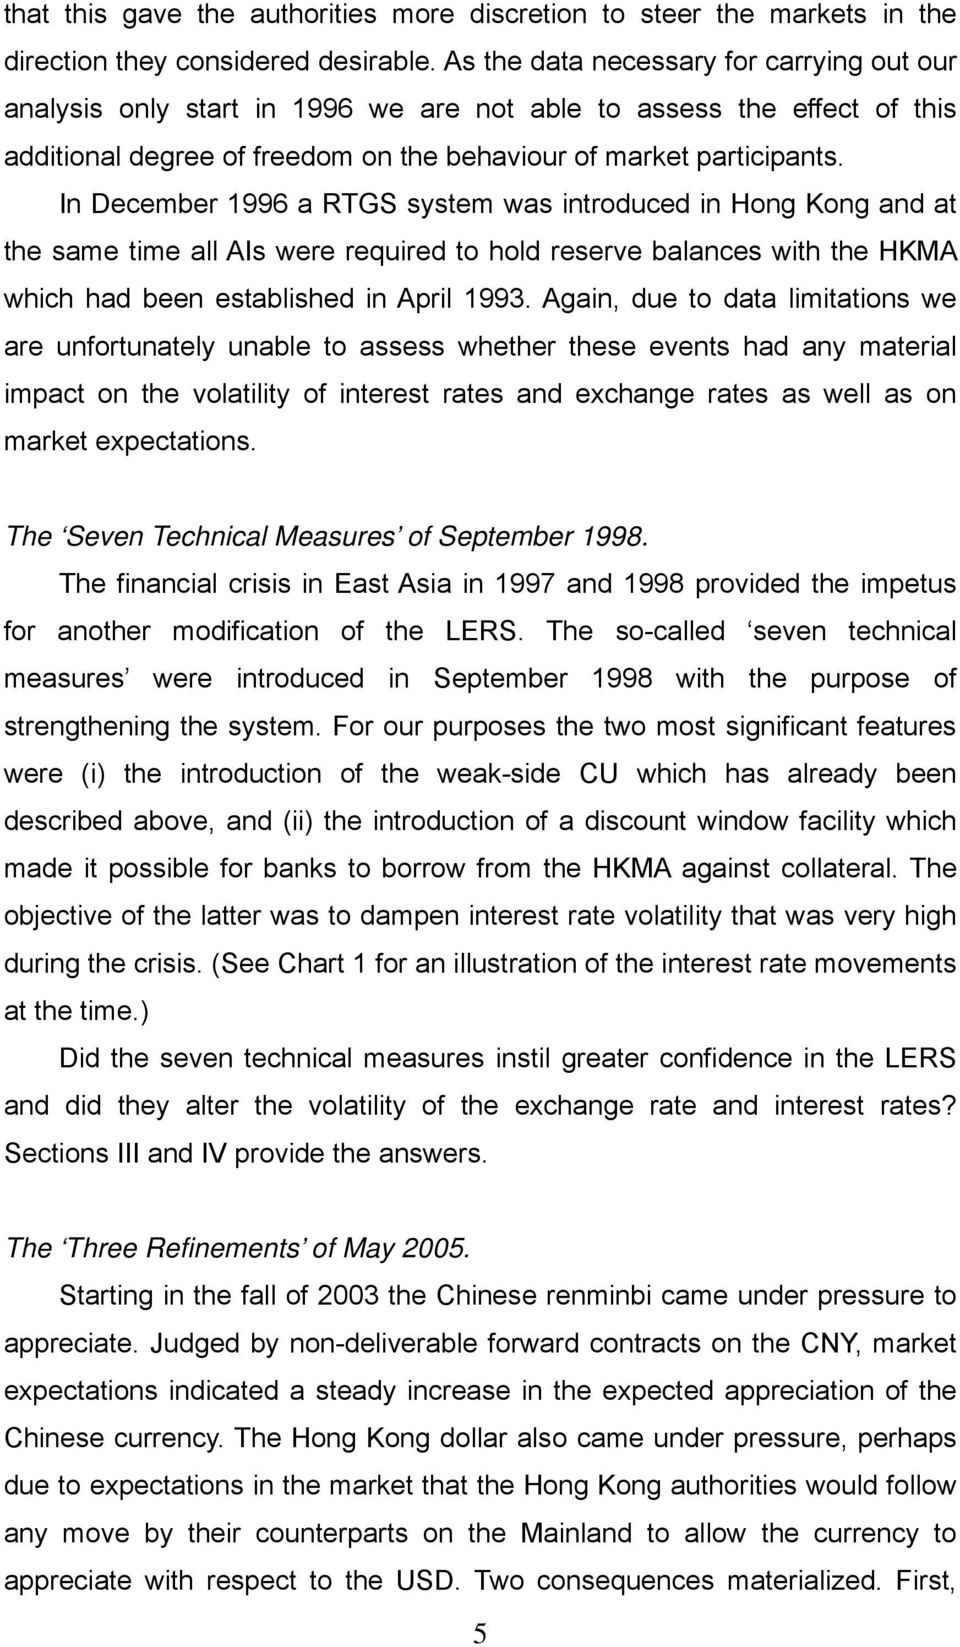 In December 1996 a RTGS system was introduced in Hong Kong and at the same time all AIs were required to hold reserve balances with the HKMA which had been established in April 1993.